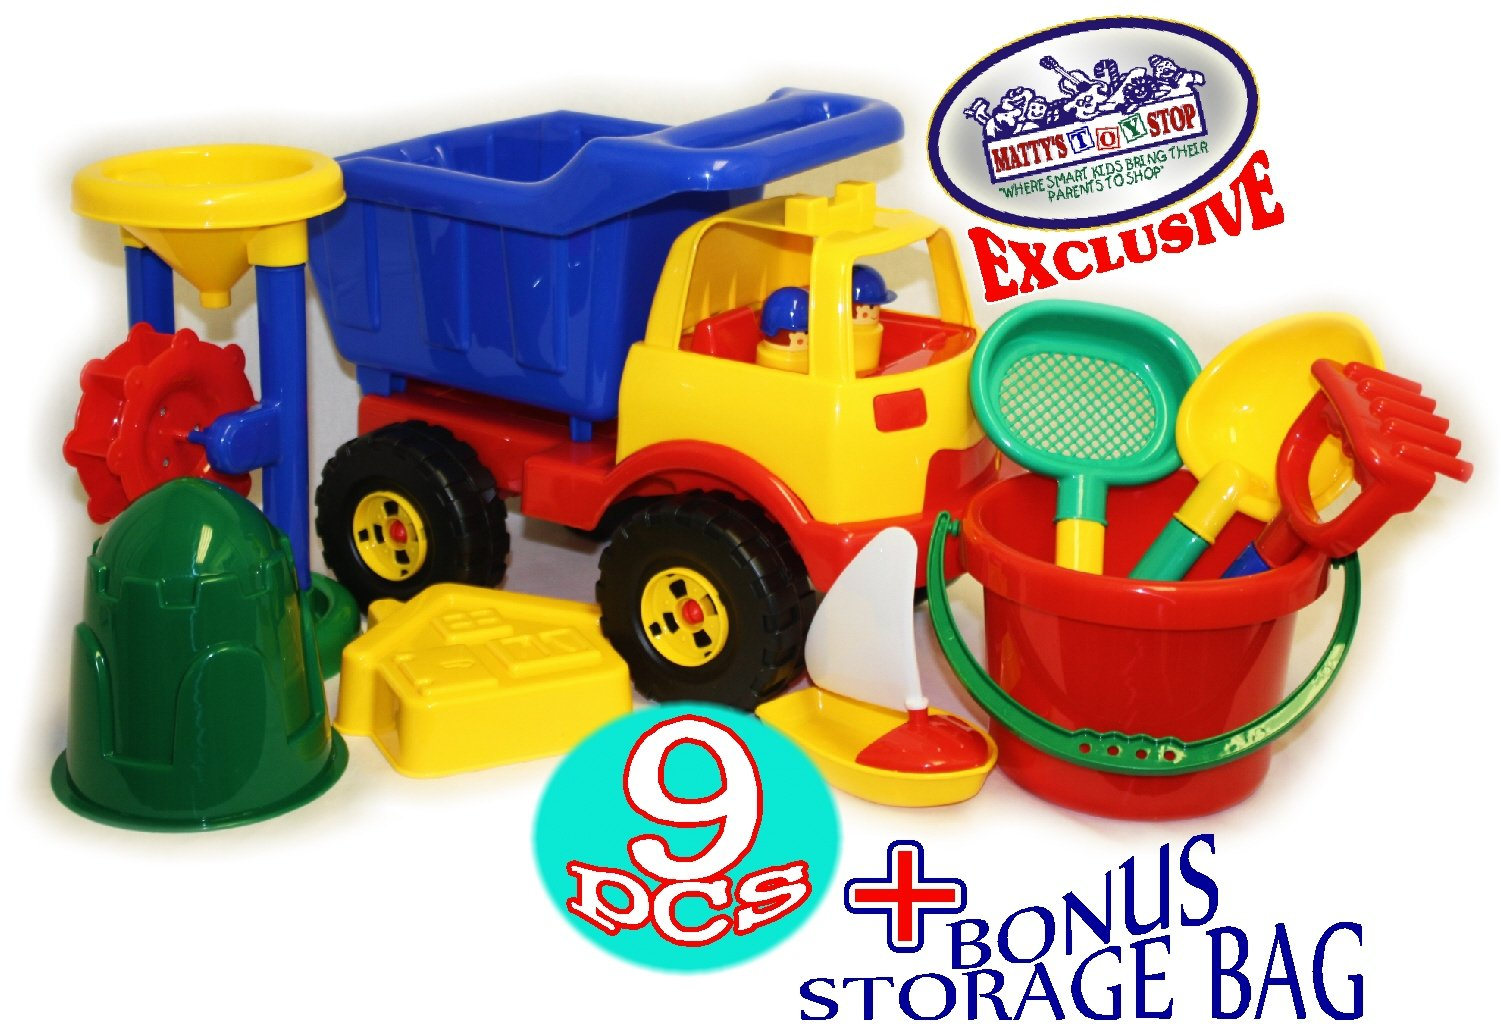 Matty S Toy Stop 9 Piece Deluxe Plastic Beach Toys Sand Set With 16 5 Dump